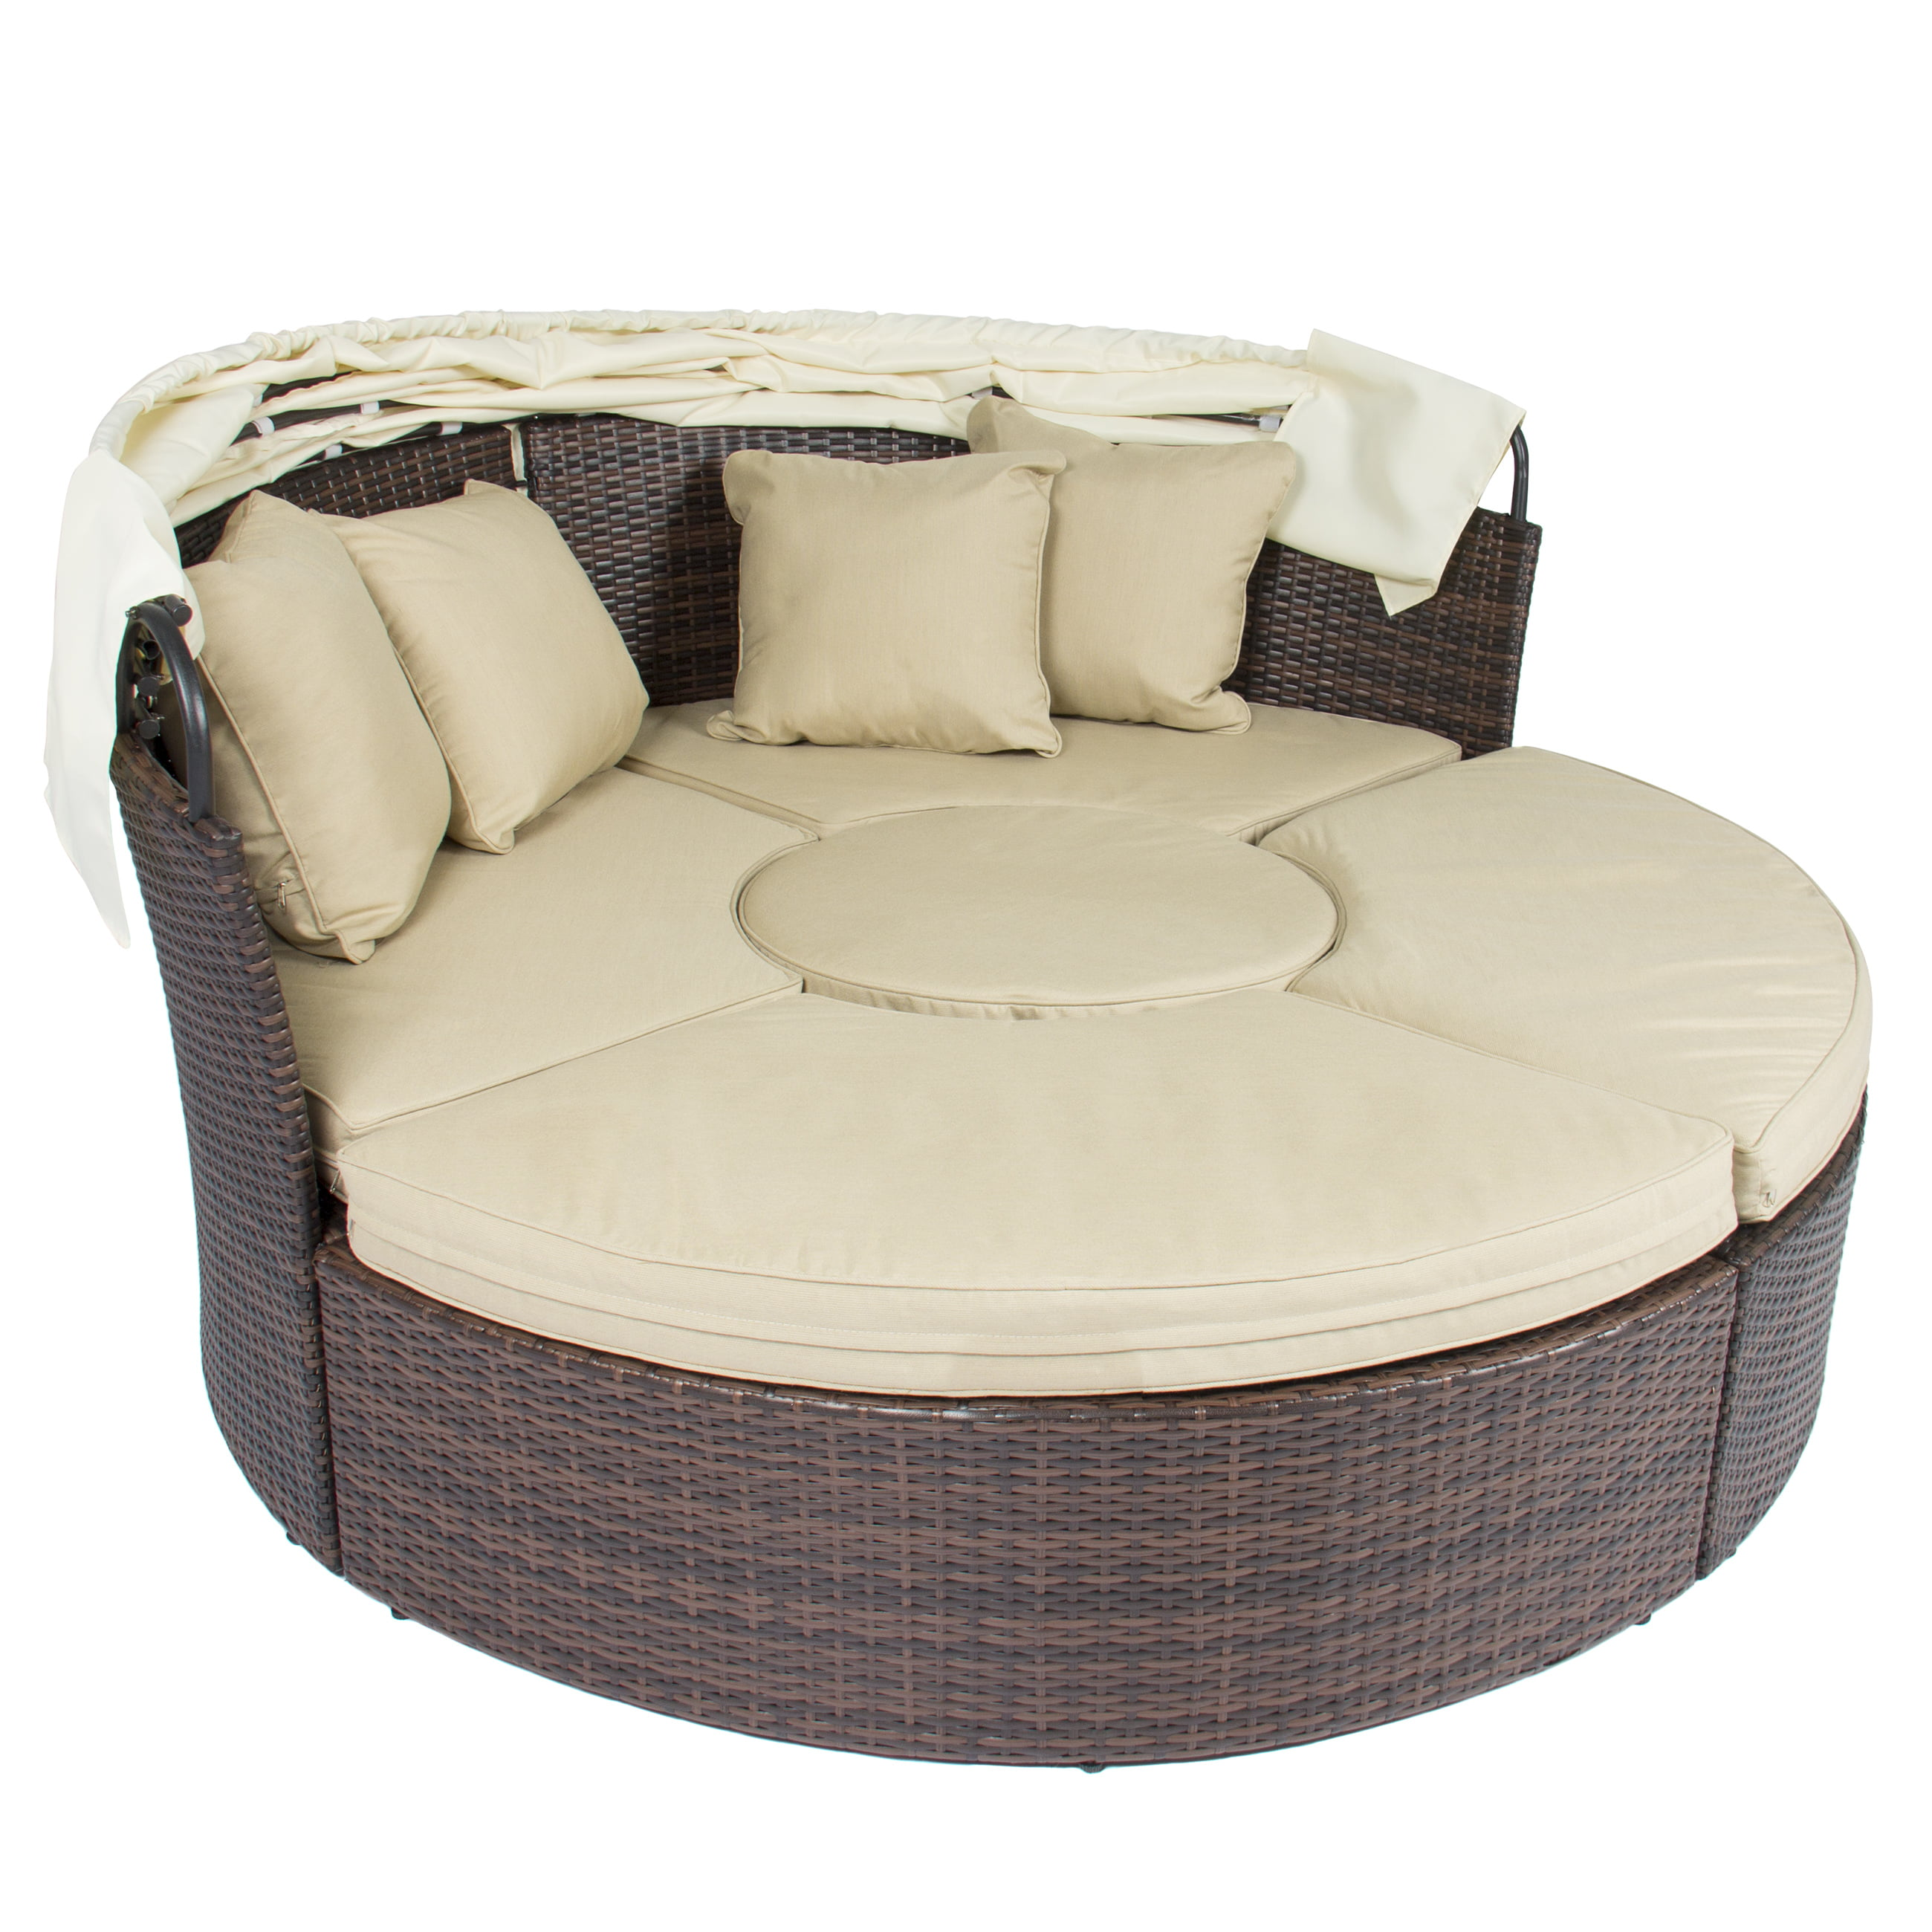 Outdoor Patio Sofa Furniture Round Retractable Canopy Daybed Brown Wicker  Rattan   Walmart.com